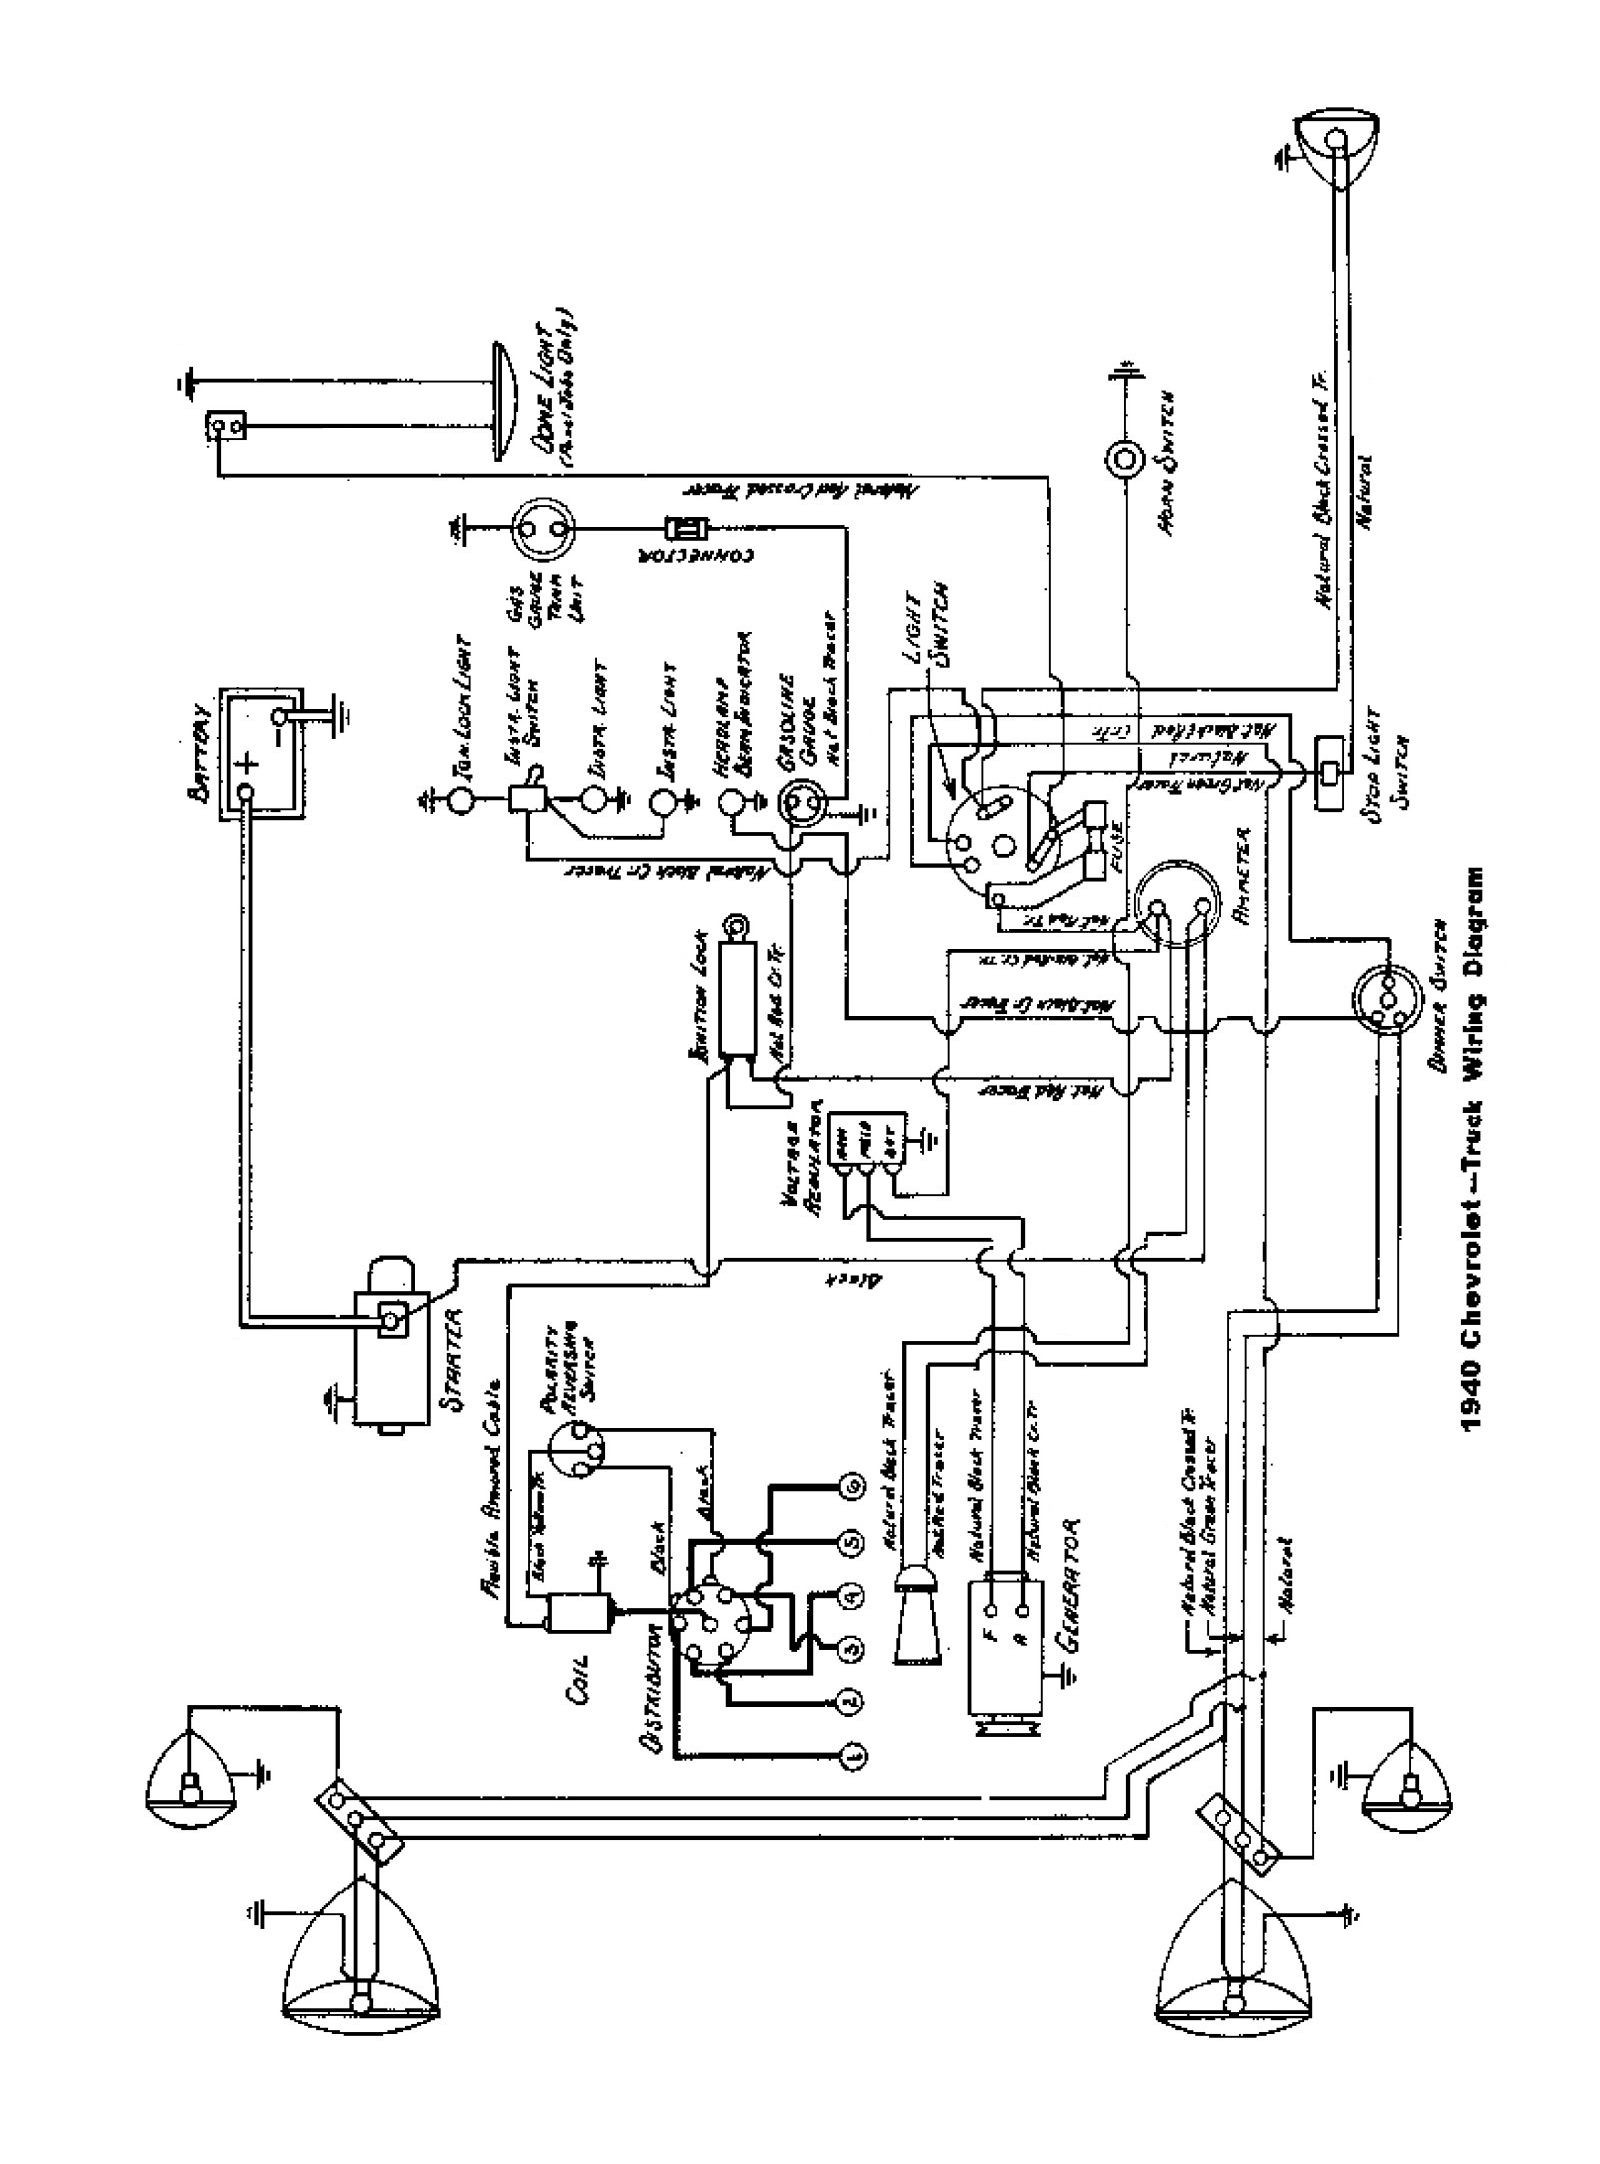 1953 dodge pickup wiring diagram wiring diagram database 1951 Dodge Wiring Diagram